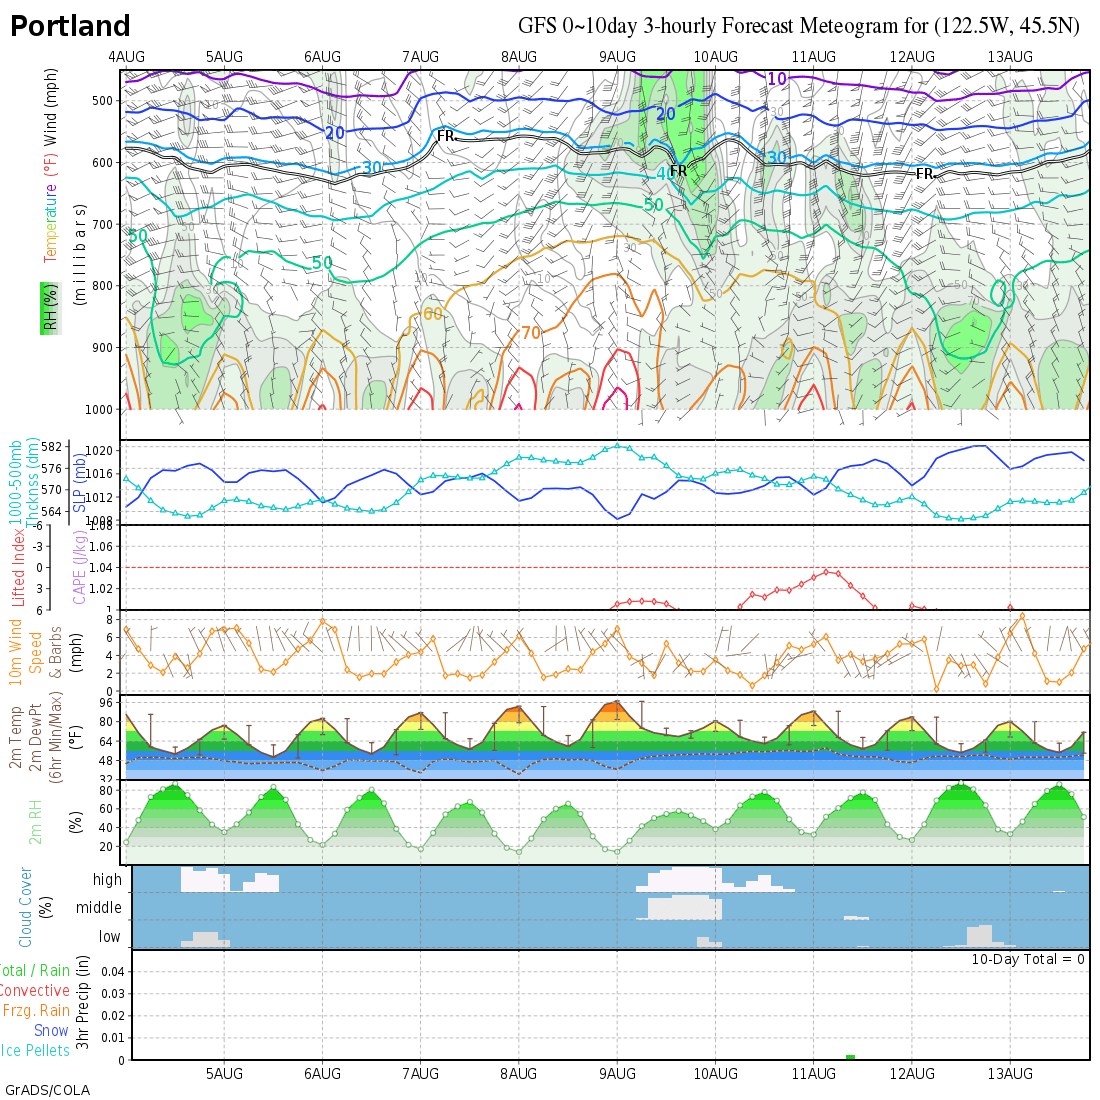 PDX 7 Day Forecast Meteogram